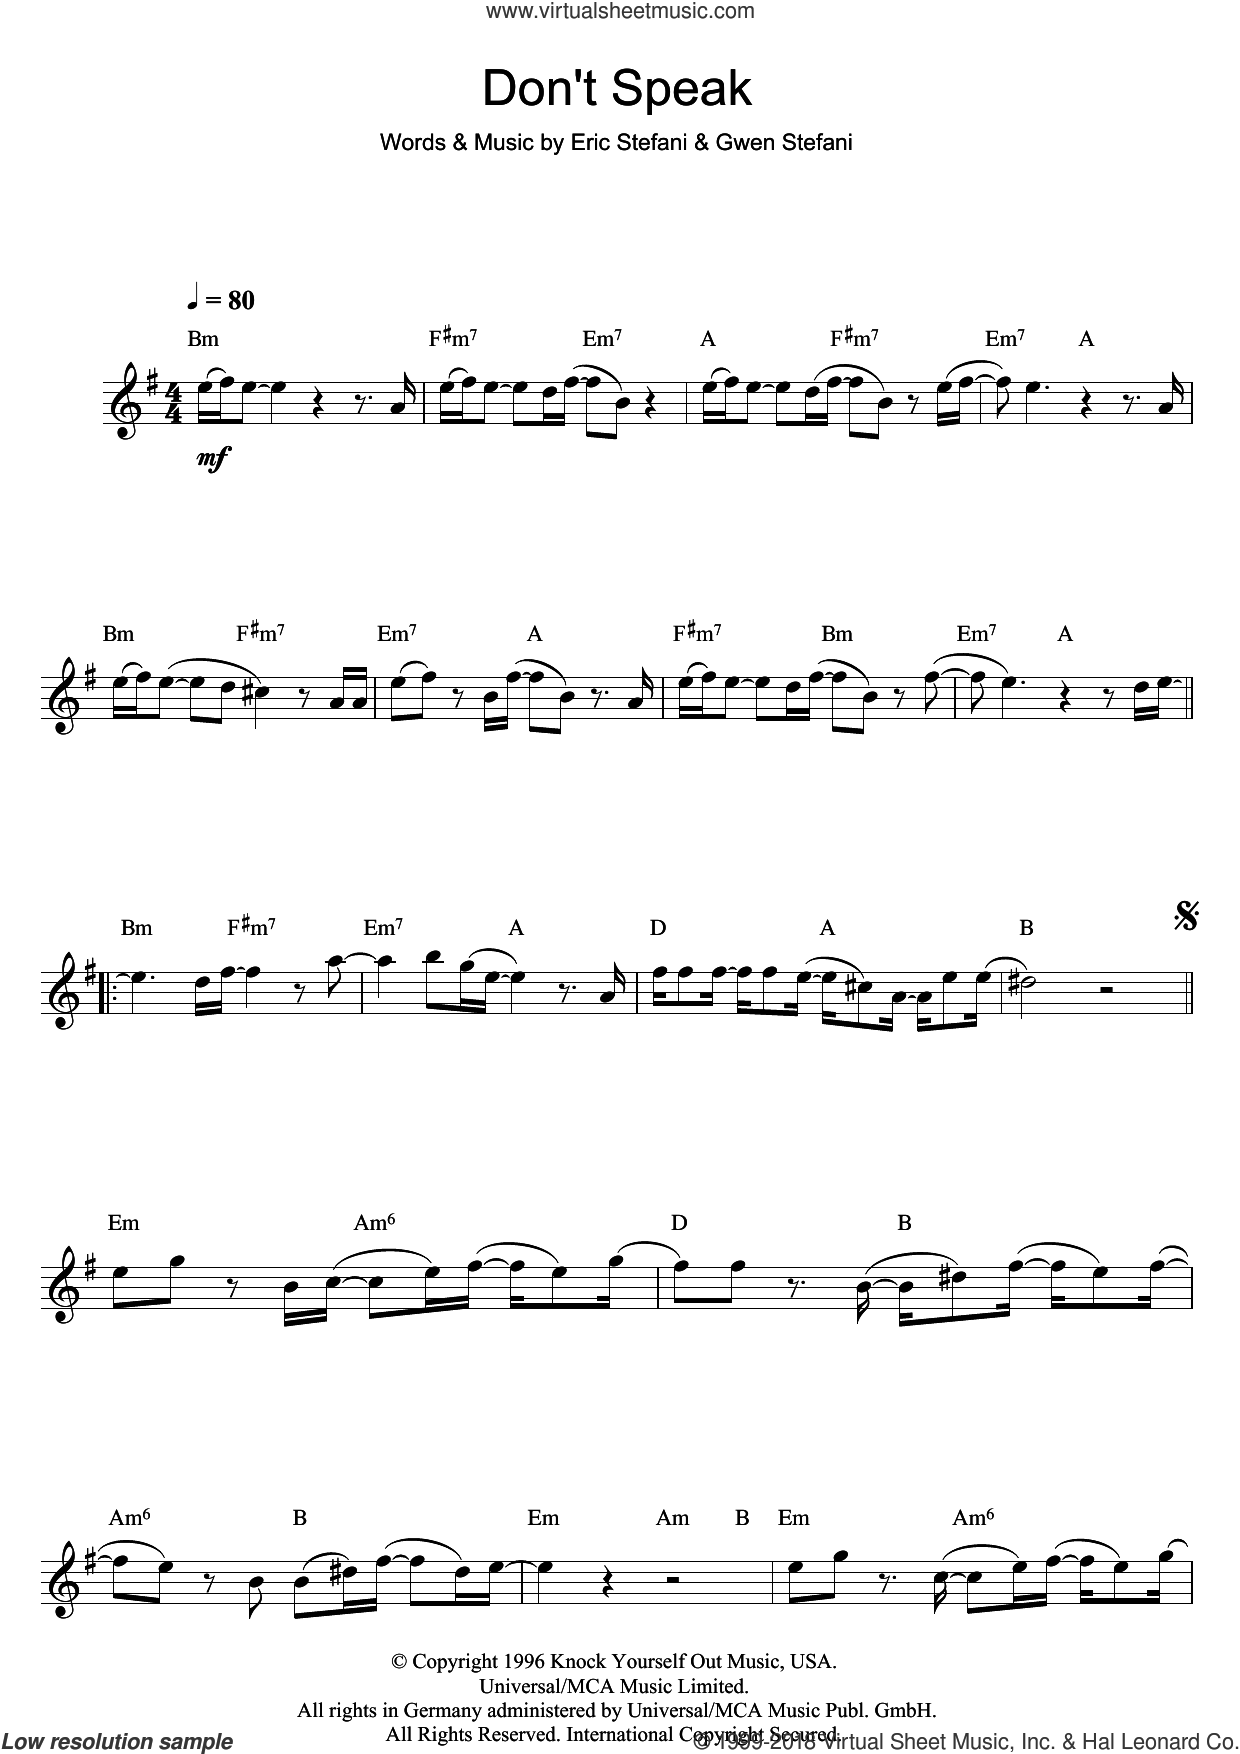 Don't Speak sheet music for flute solo by No Doubt, Eric Stefani and Gwen Stefani, intermediate skill level